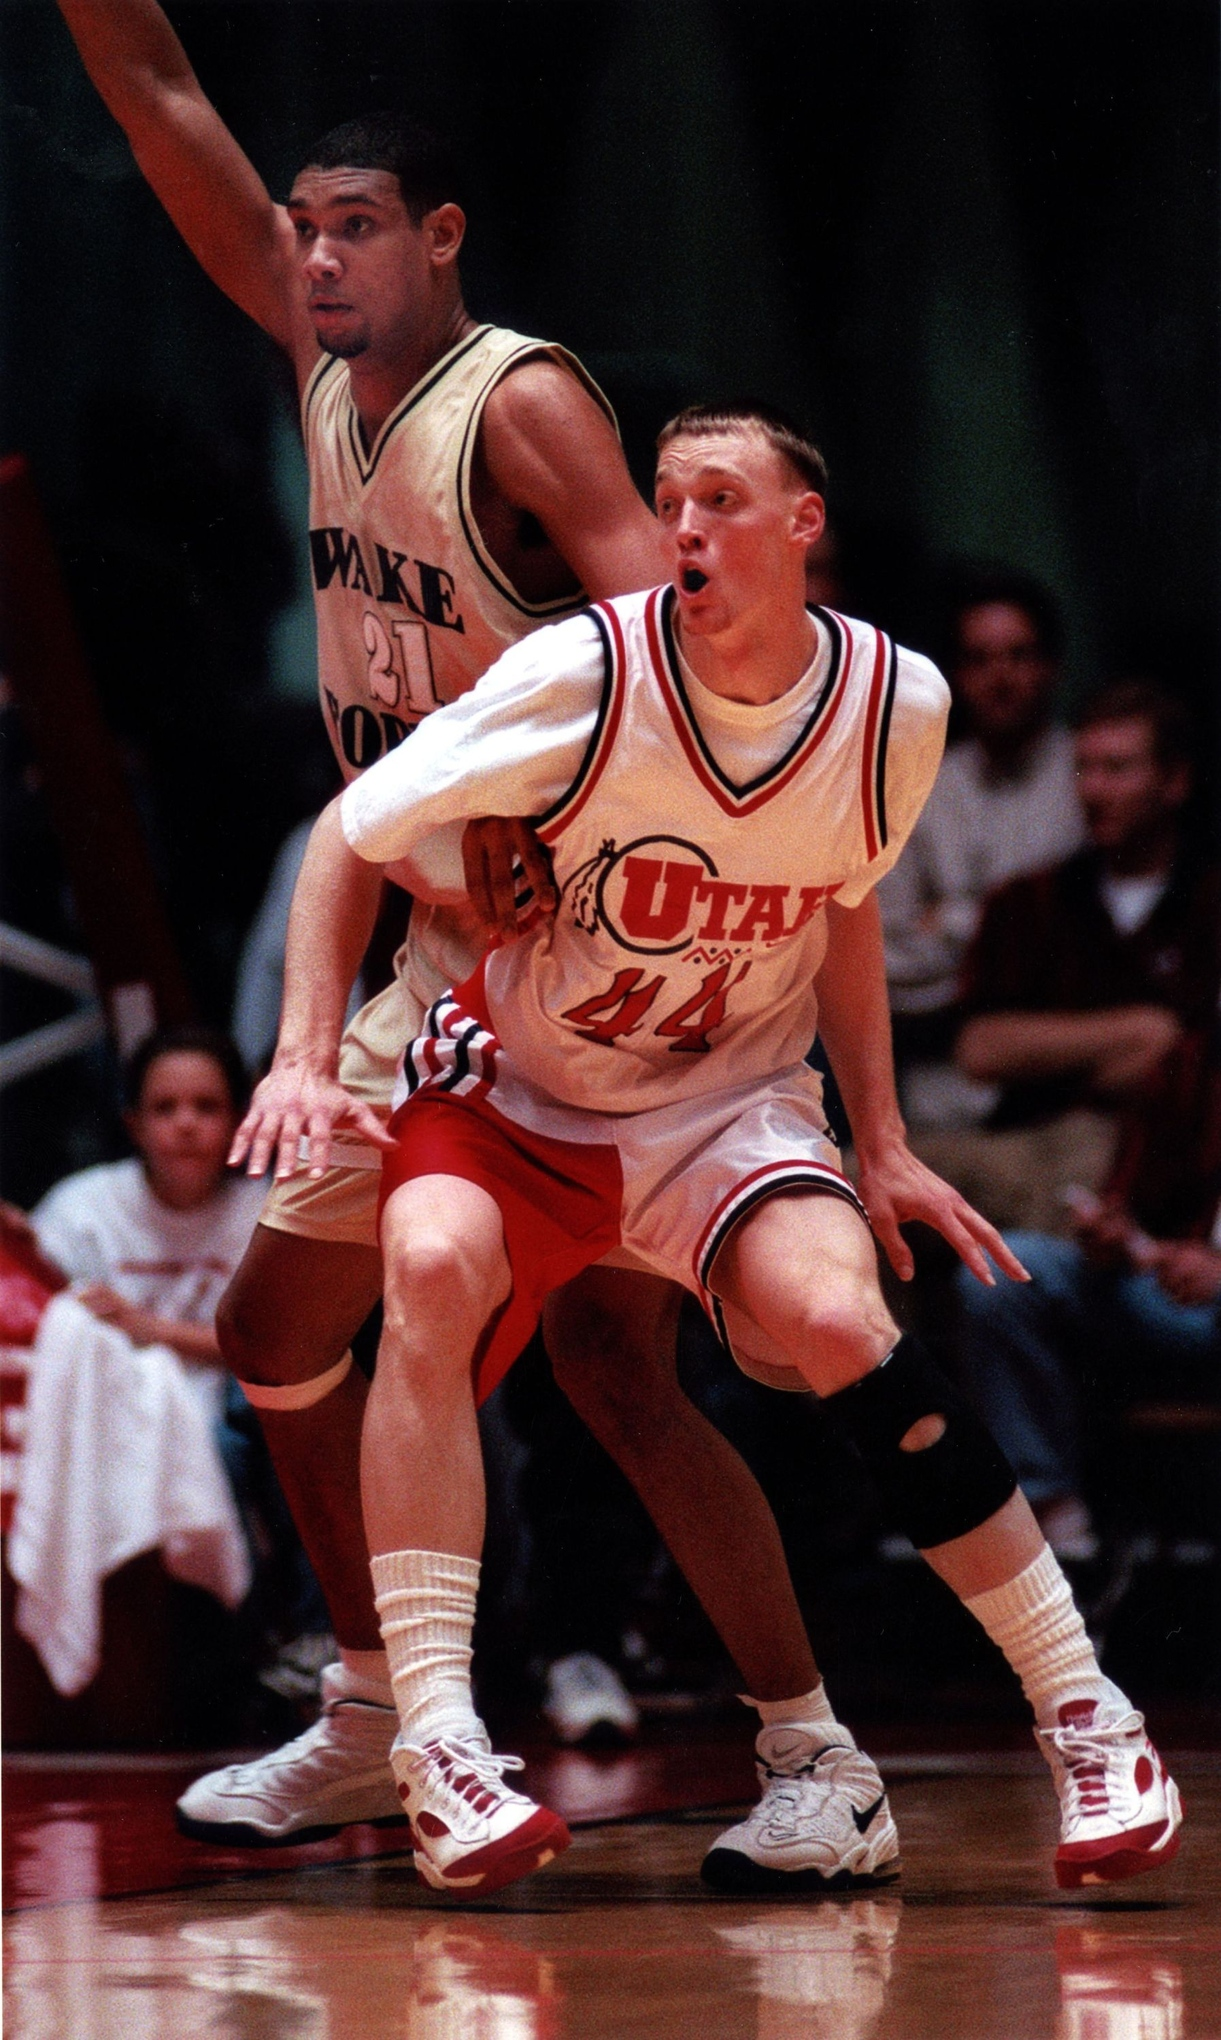 Runnin' Utes all-time leading scorer Keith Van Horn (shown here guarding former Wake Forest star Tim Duncan) is an all-century teamer and has his jersey retired and hanging in the Jon M. Huntsman Center.